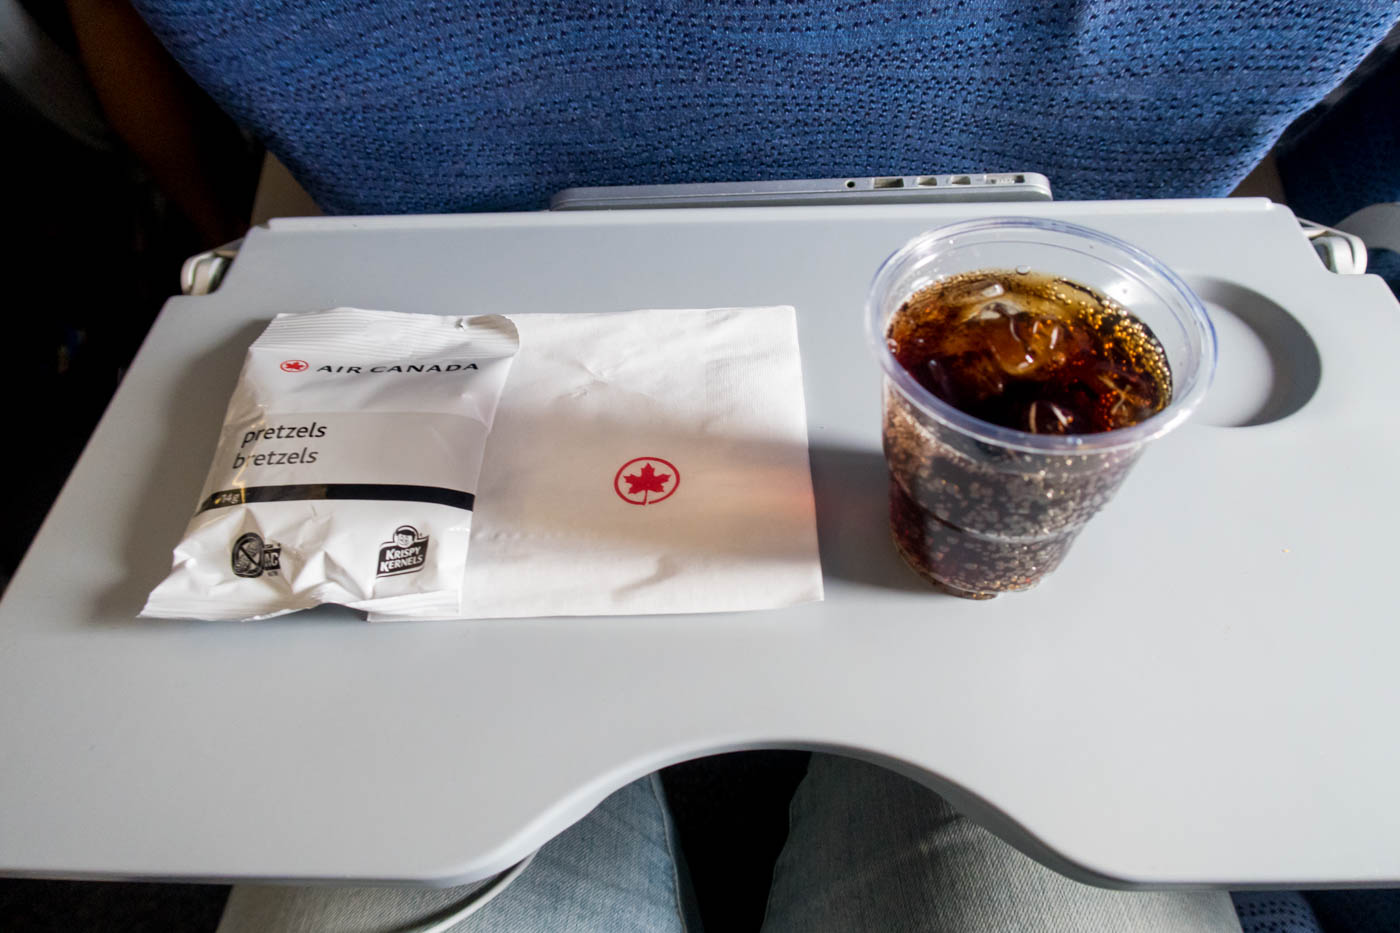 Air Canada Airbus A330 300 Short Haul Domestic Economy Class Service inflight free drink and pretzels